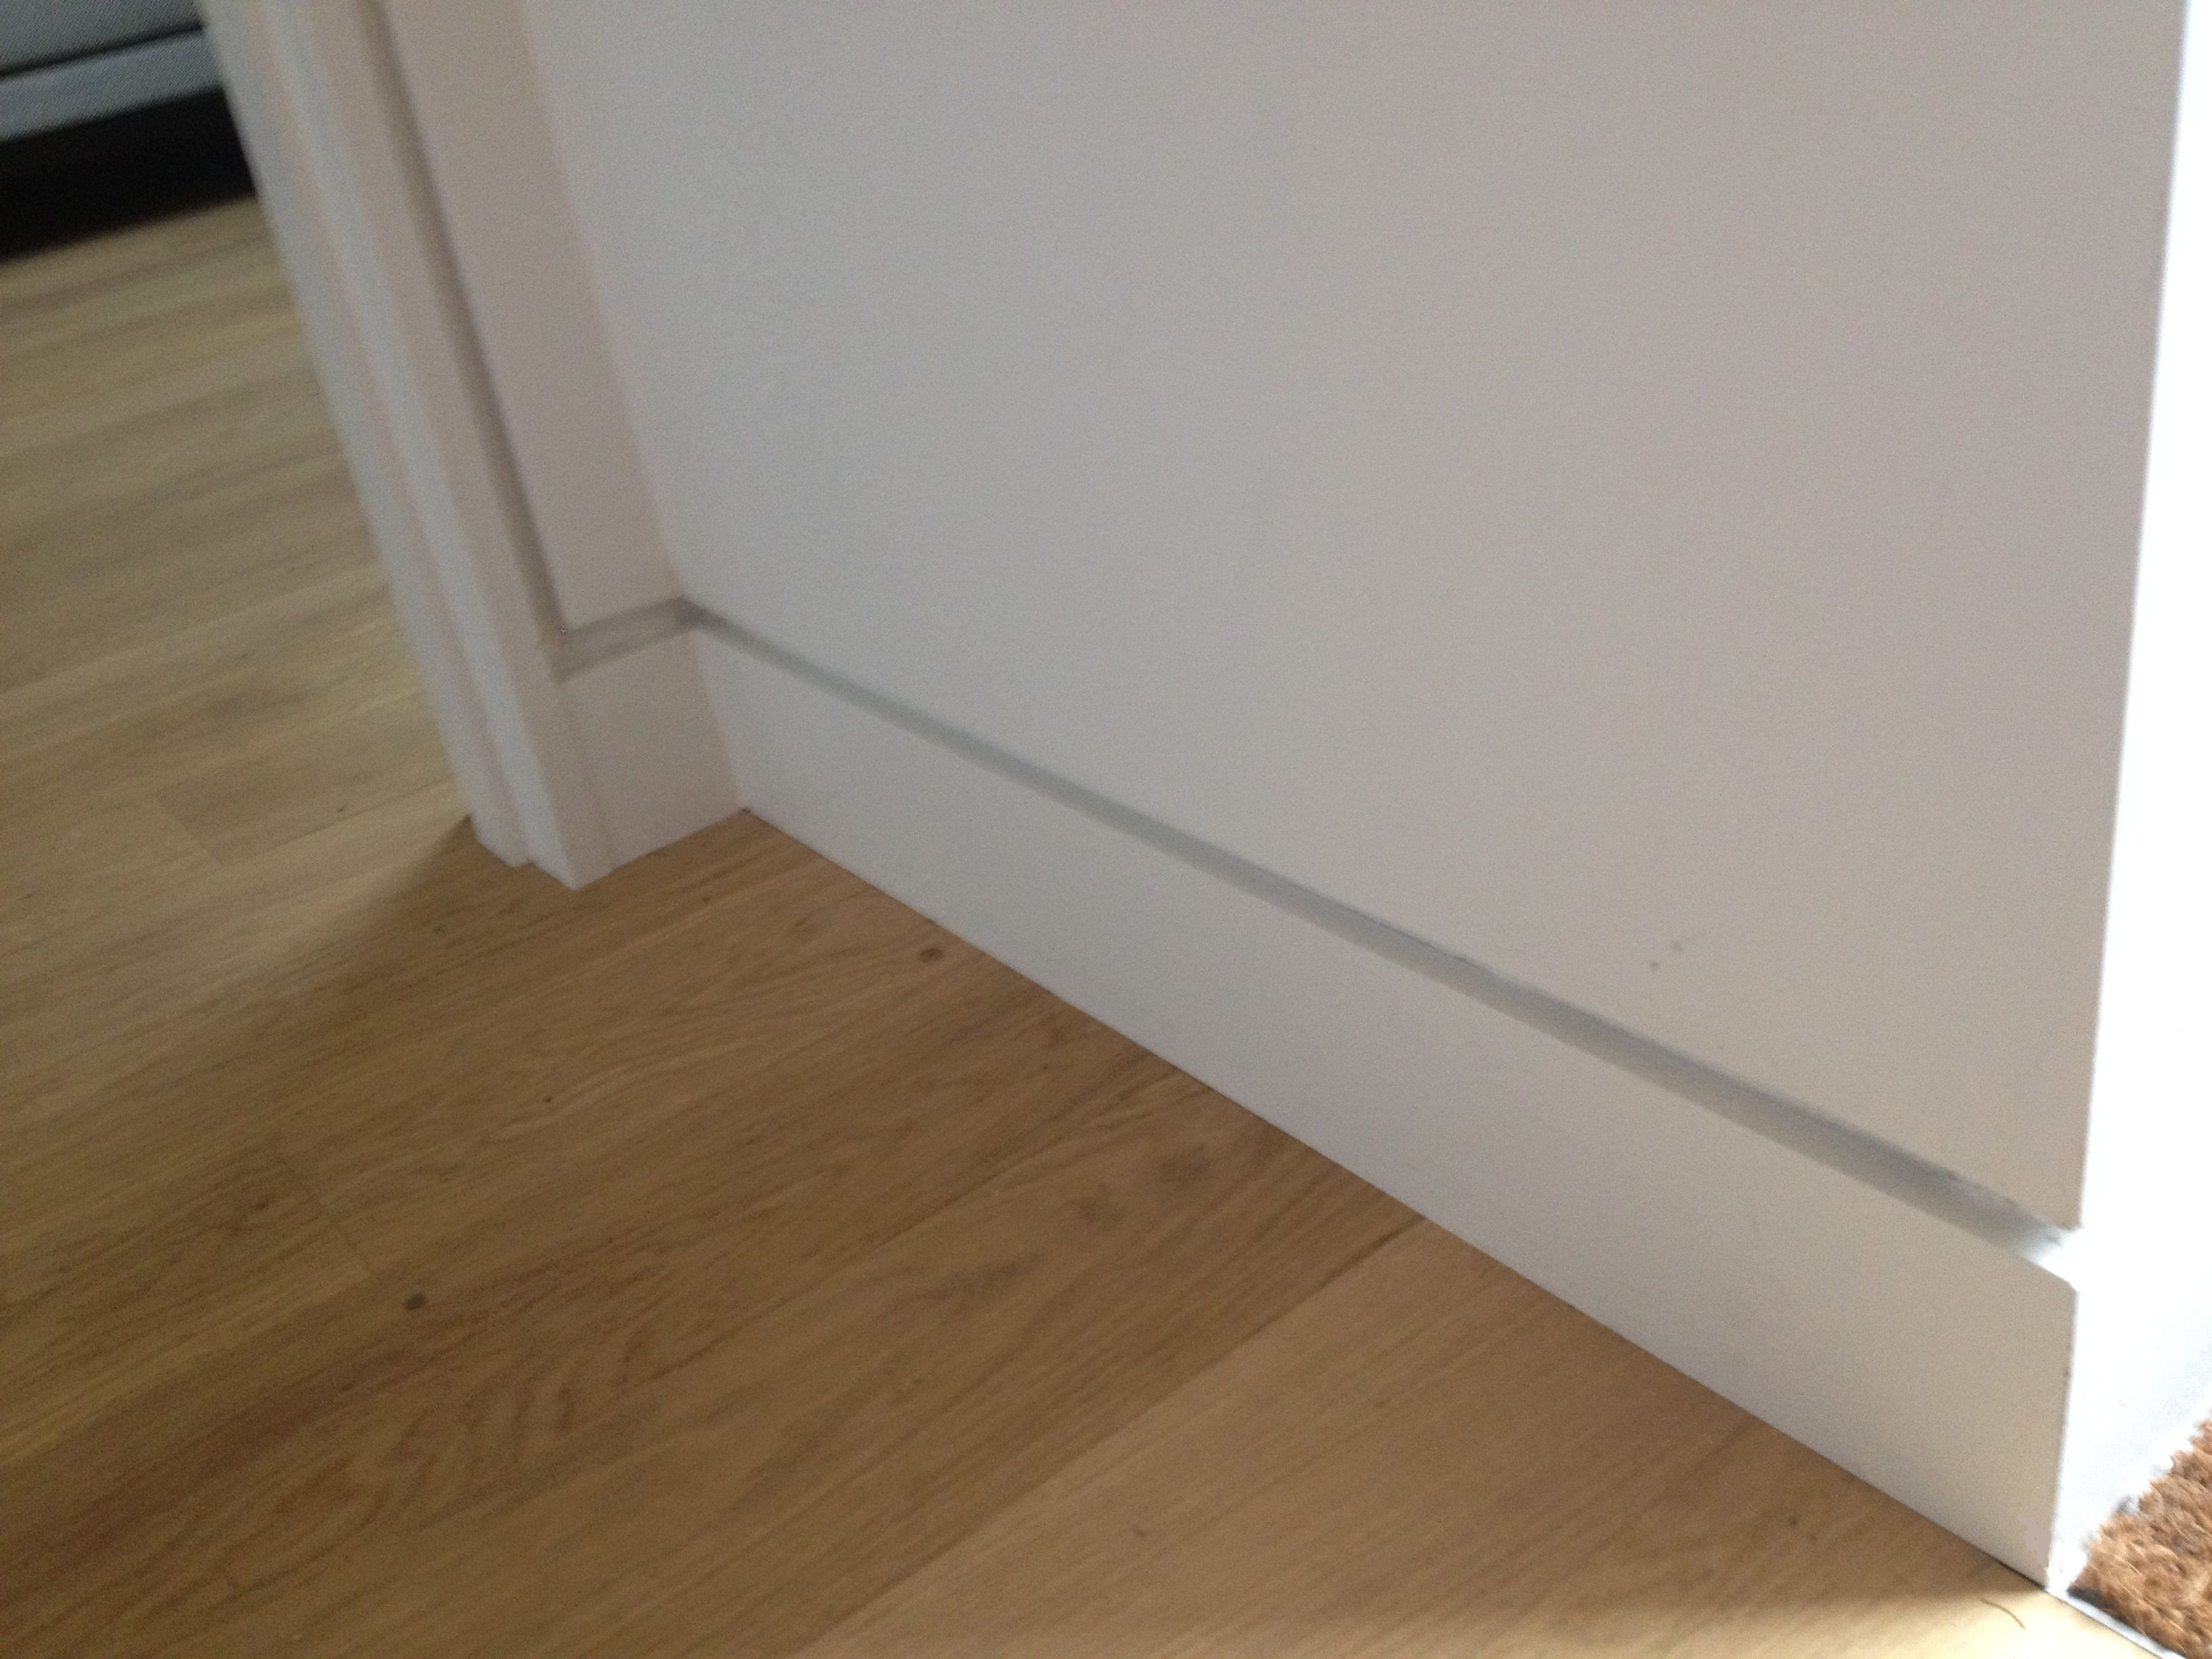 Shadow gap modern skirting board doesn 39 t have to go - Contemporary trim moulding ...